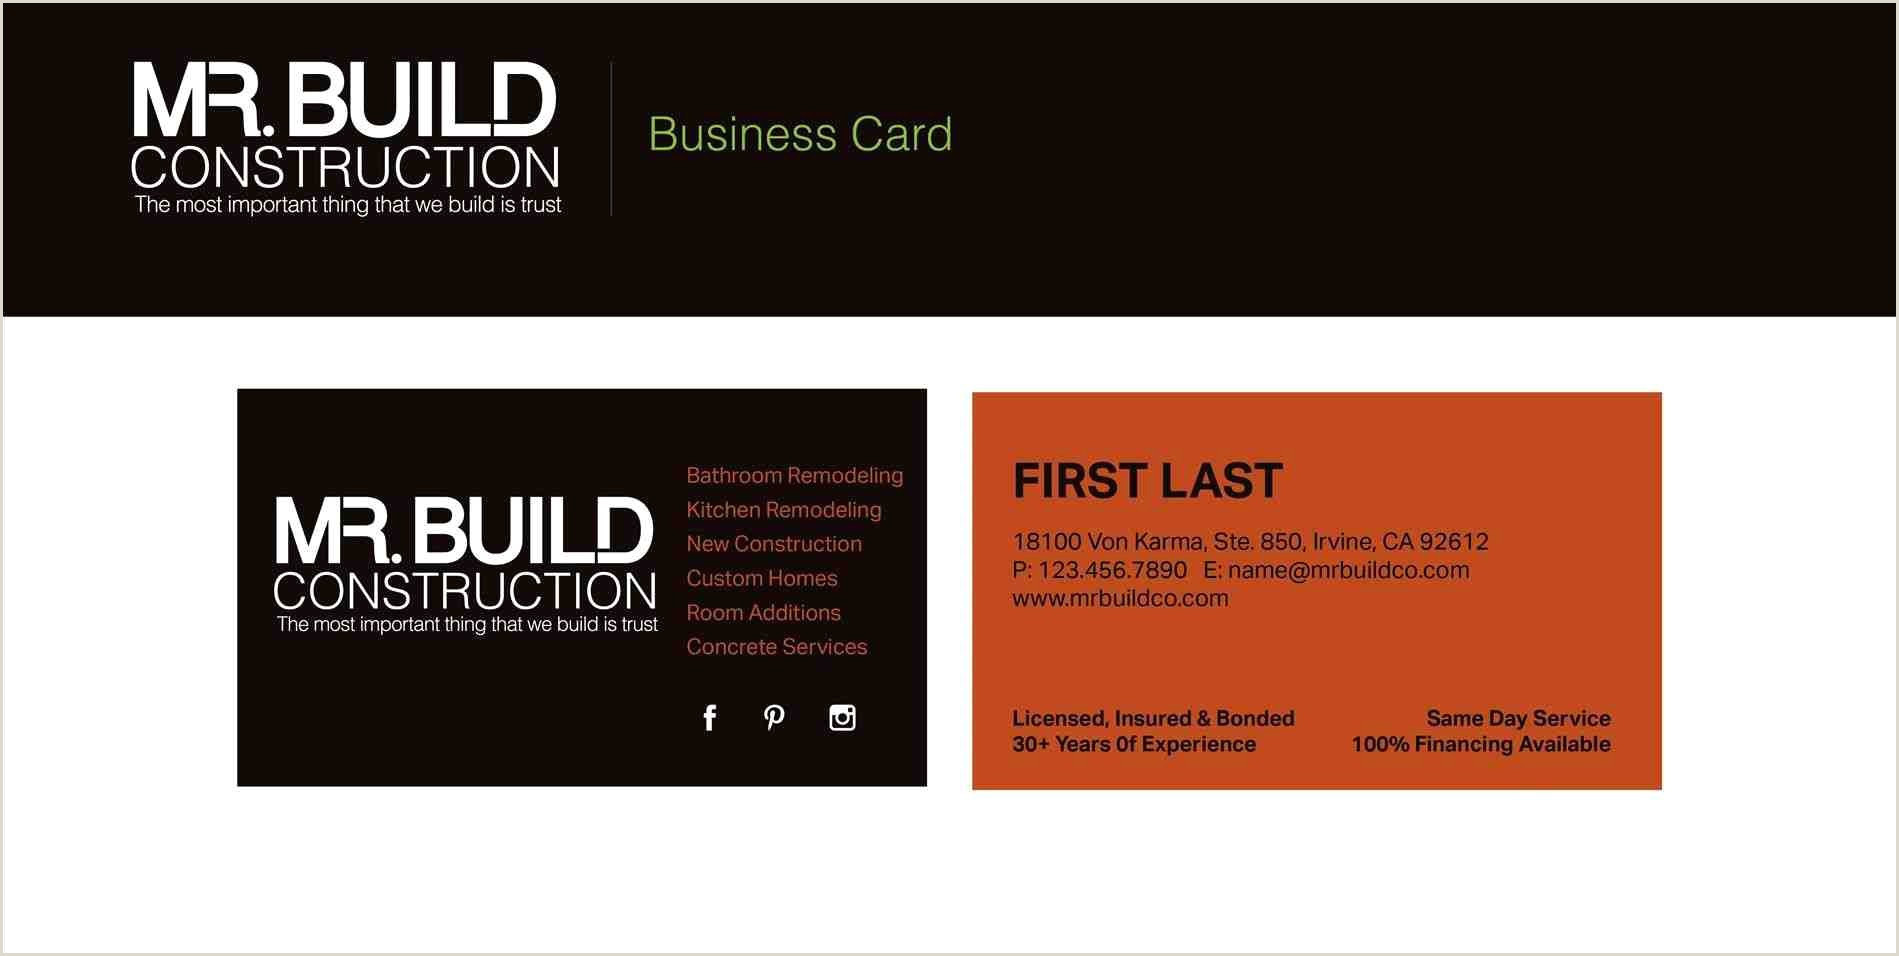 Most Unique Titles On Business Cards 14 Popular Hardwood Flooring Business Card Template